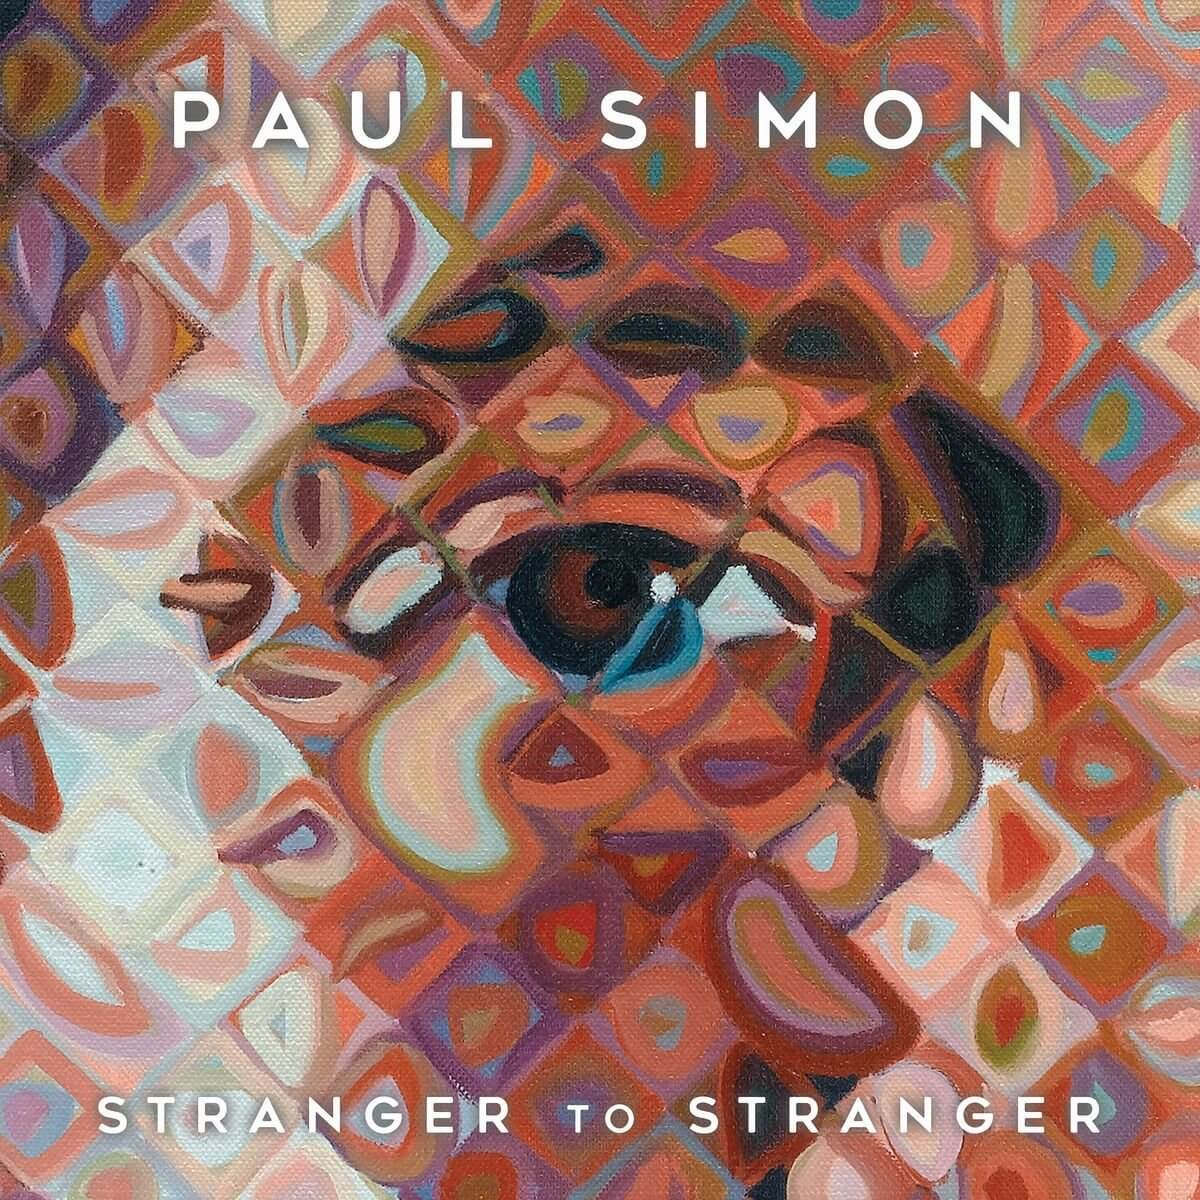 Paul-Simon Stranger To Stranger